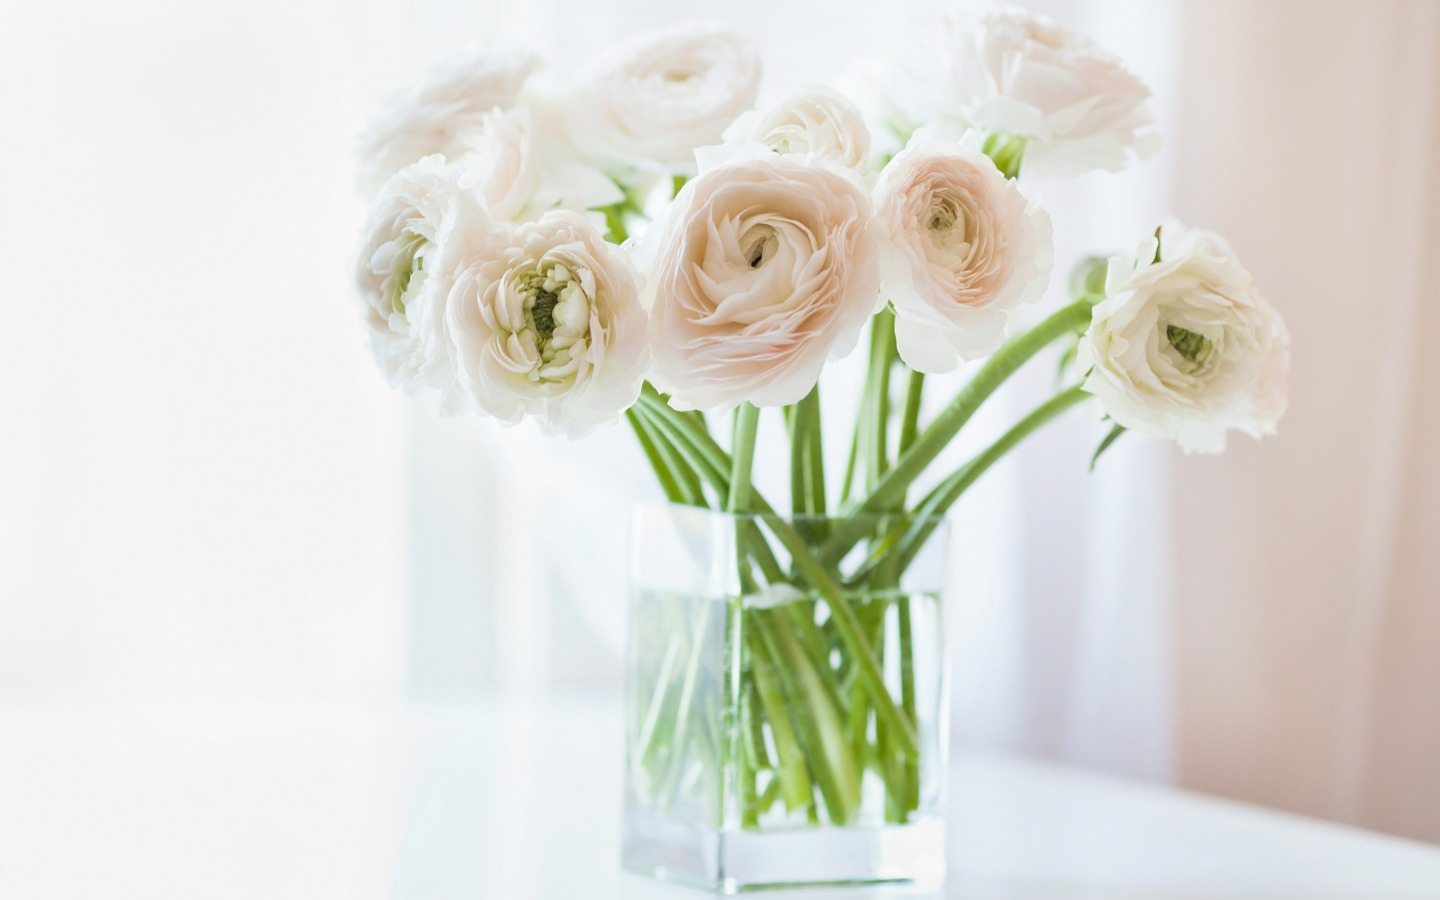 White Flower Wallpapers Download at